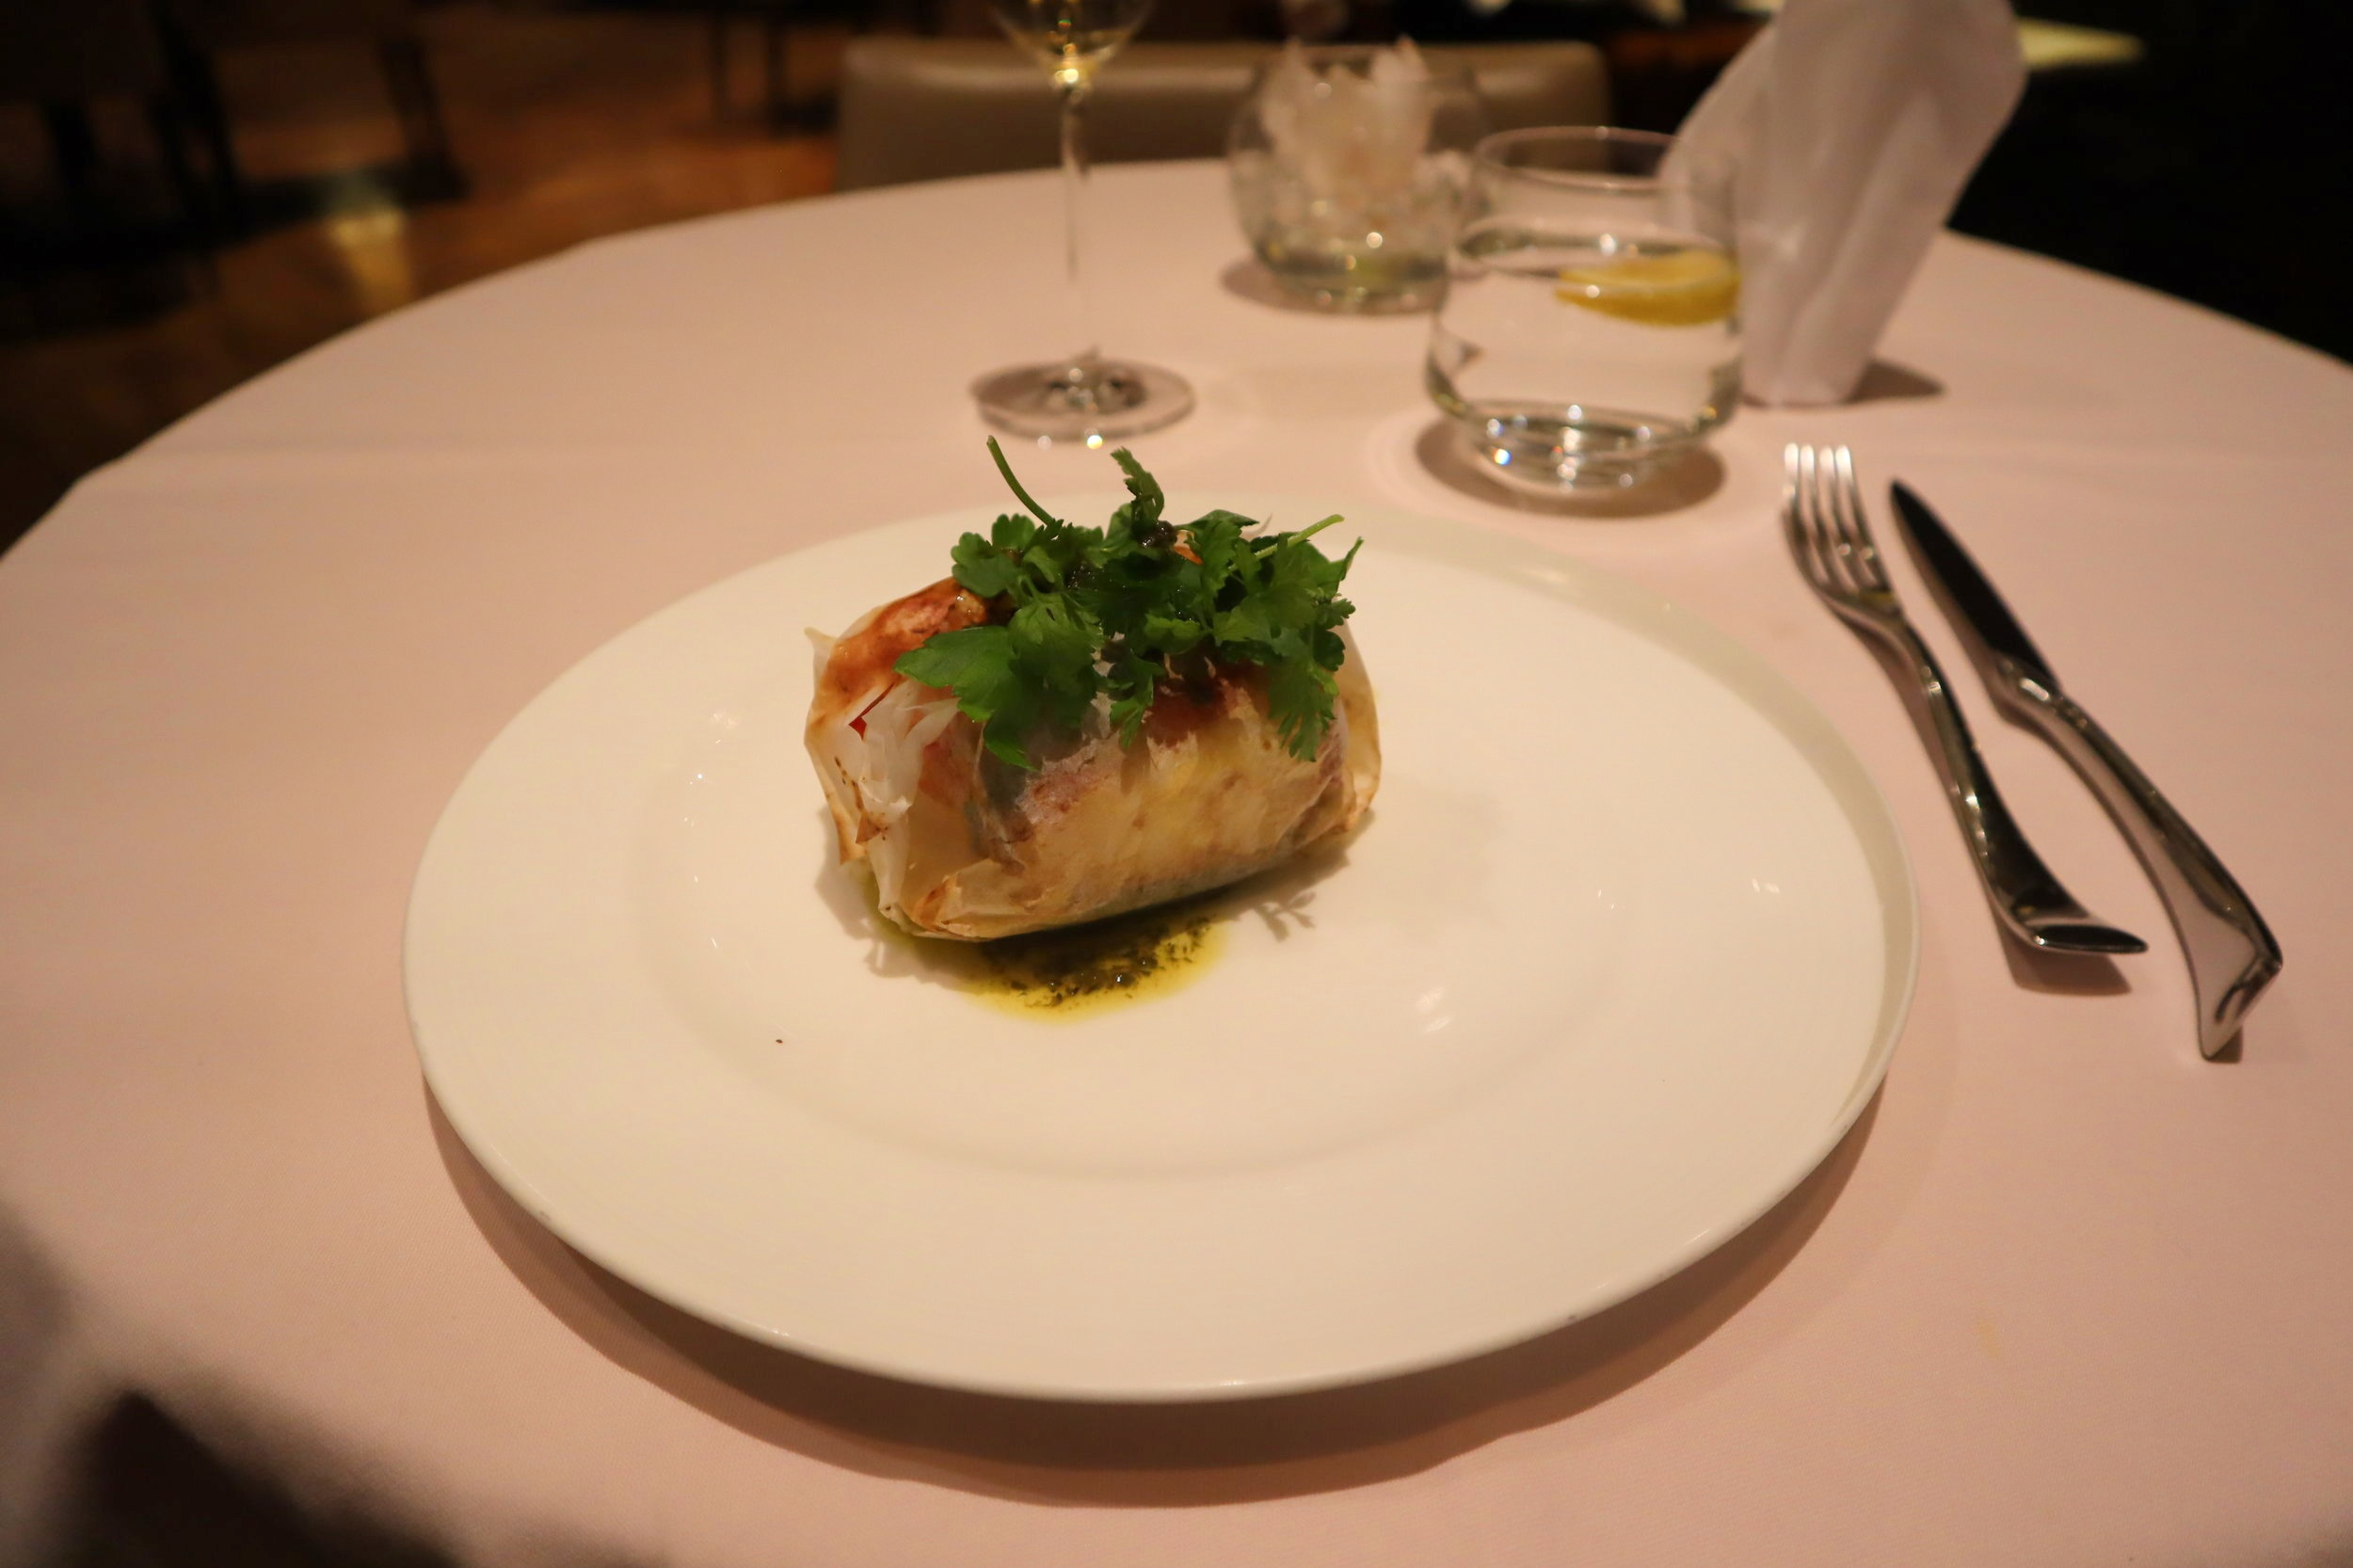 The Private Room by Singapore Airlines – Baked Chilean sea bass papillote